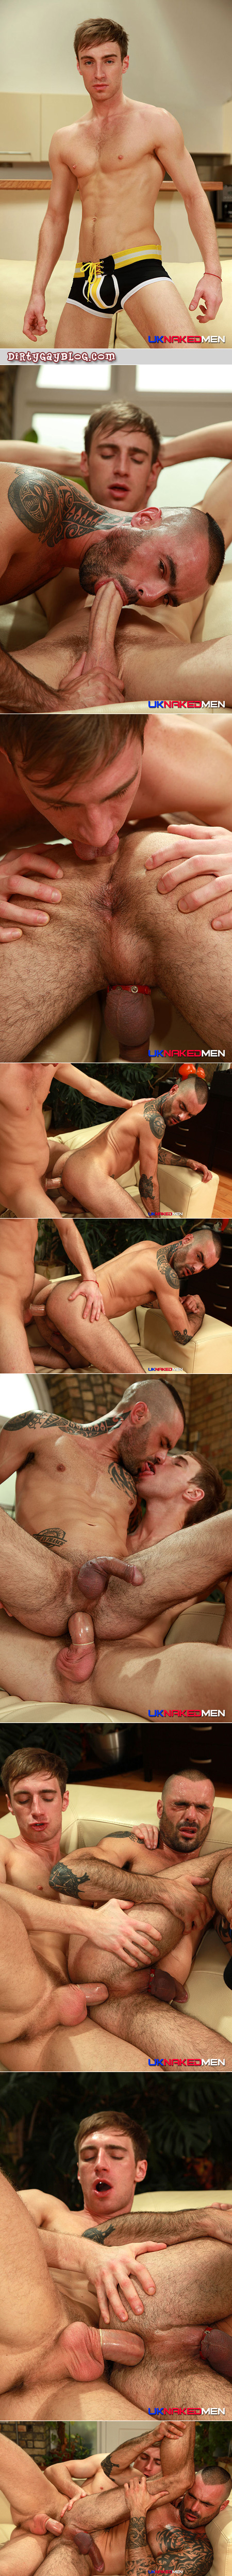 Scruffy, tattooed muscle jock sucking a huge cock and taking the enormous dick in his ass.